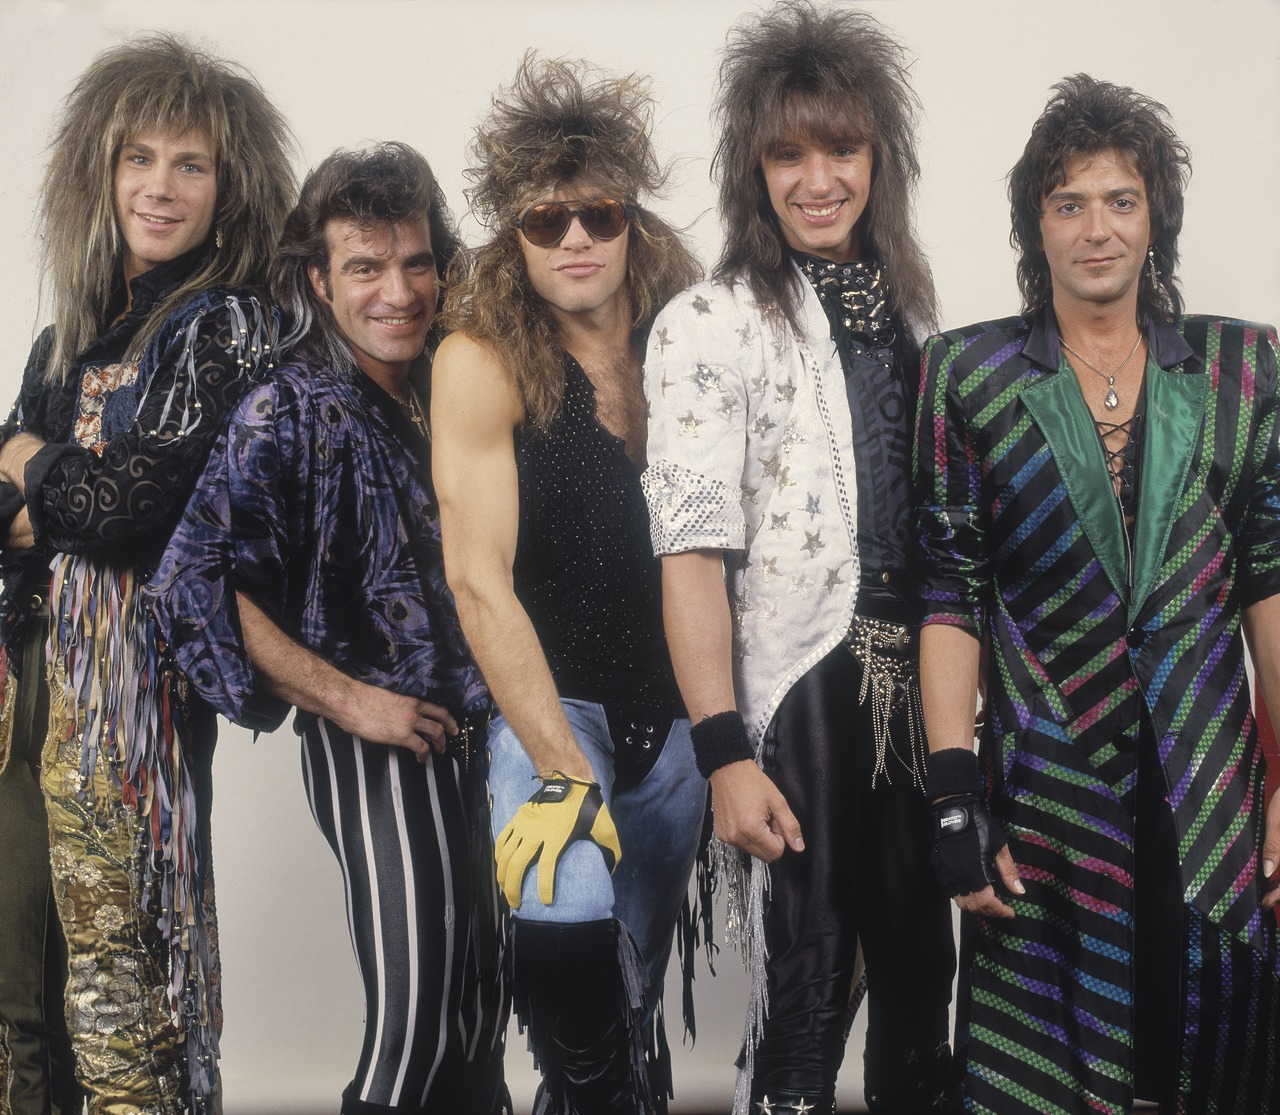 Men S Fashion Trends Of The 80s That Should Never Come Back